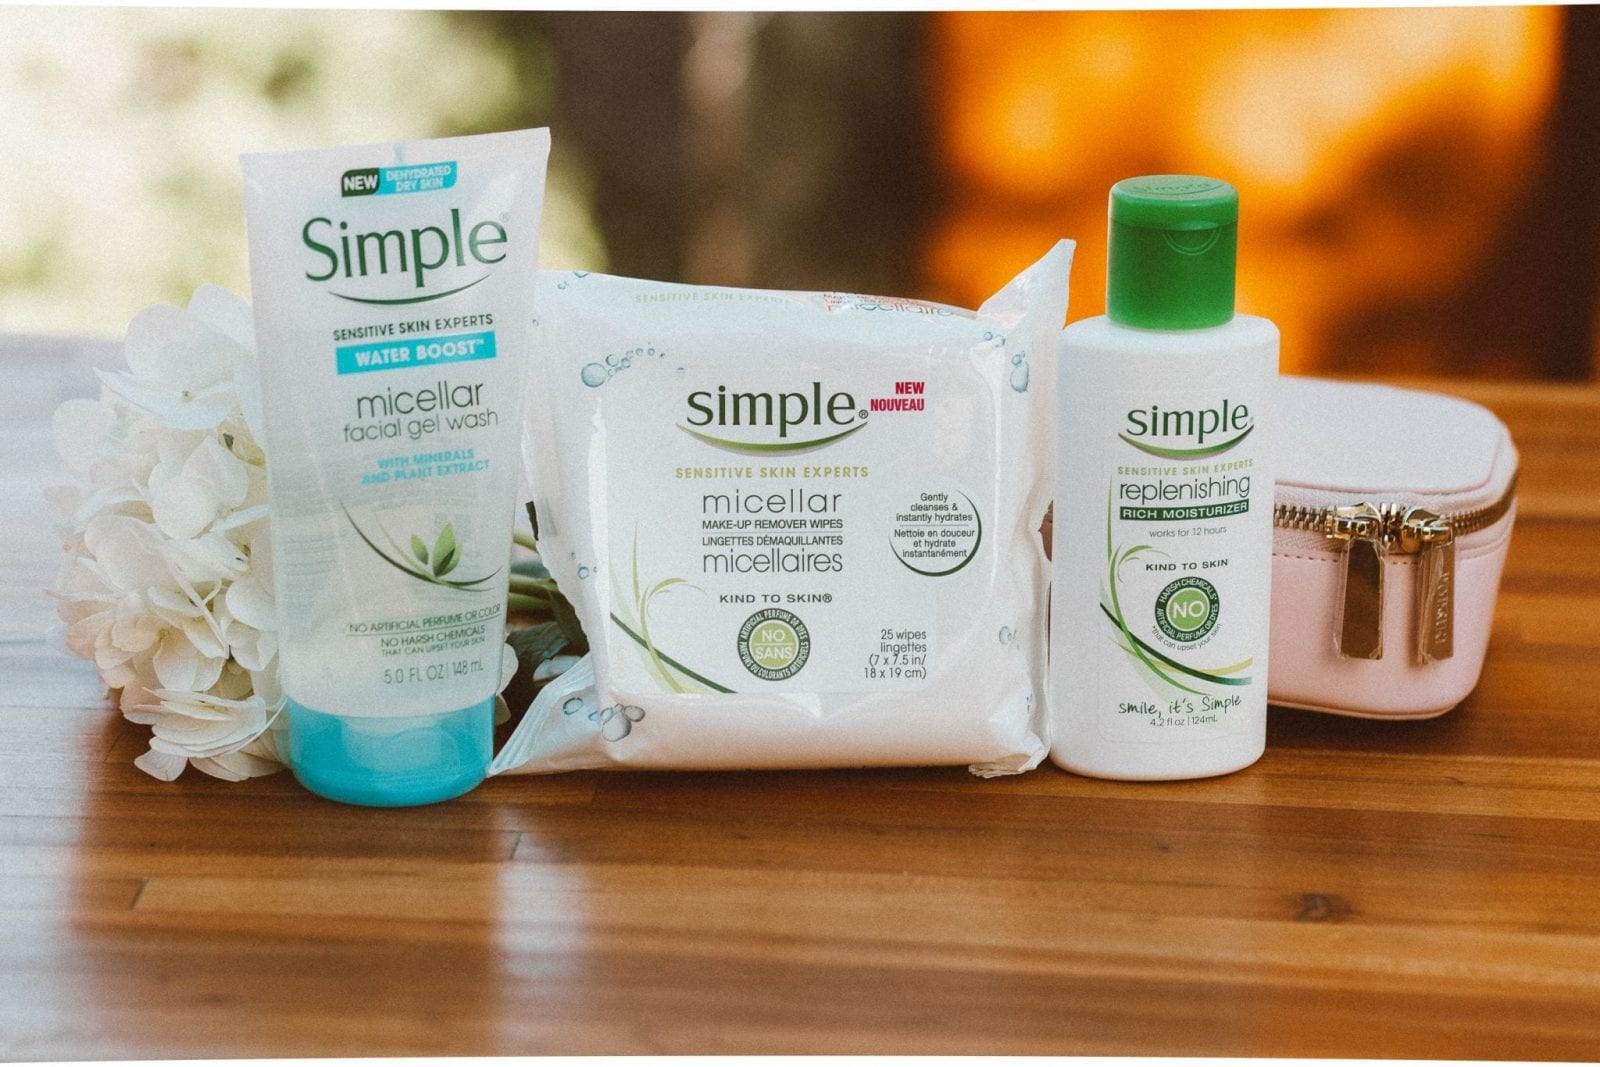 This is a close up of the Simple Skincare 3 Step Routine